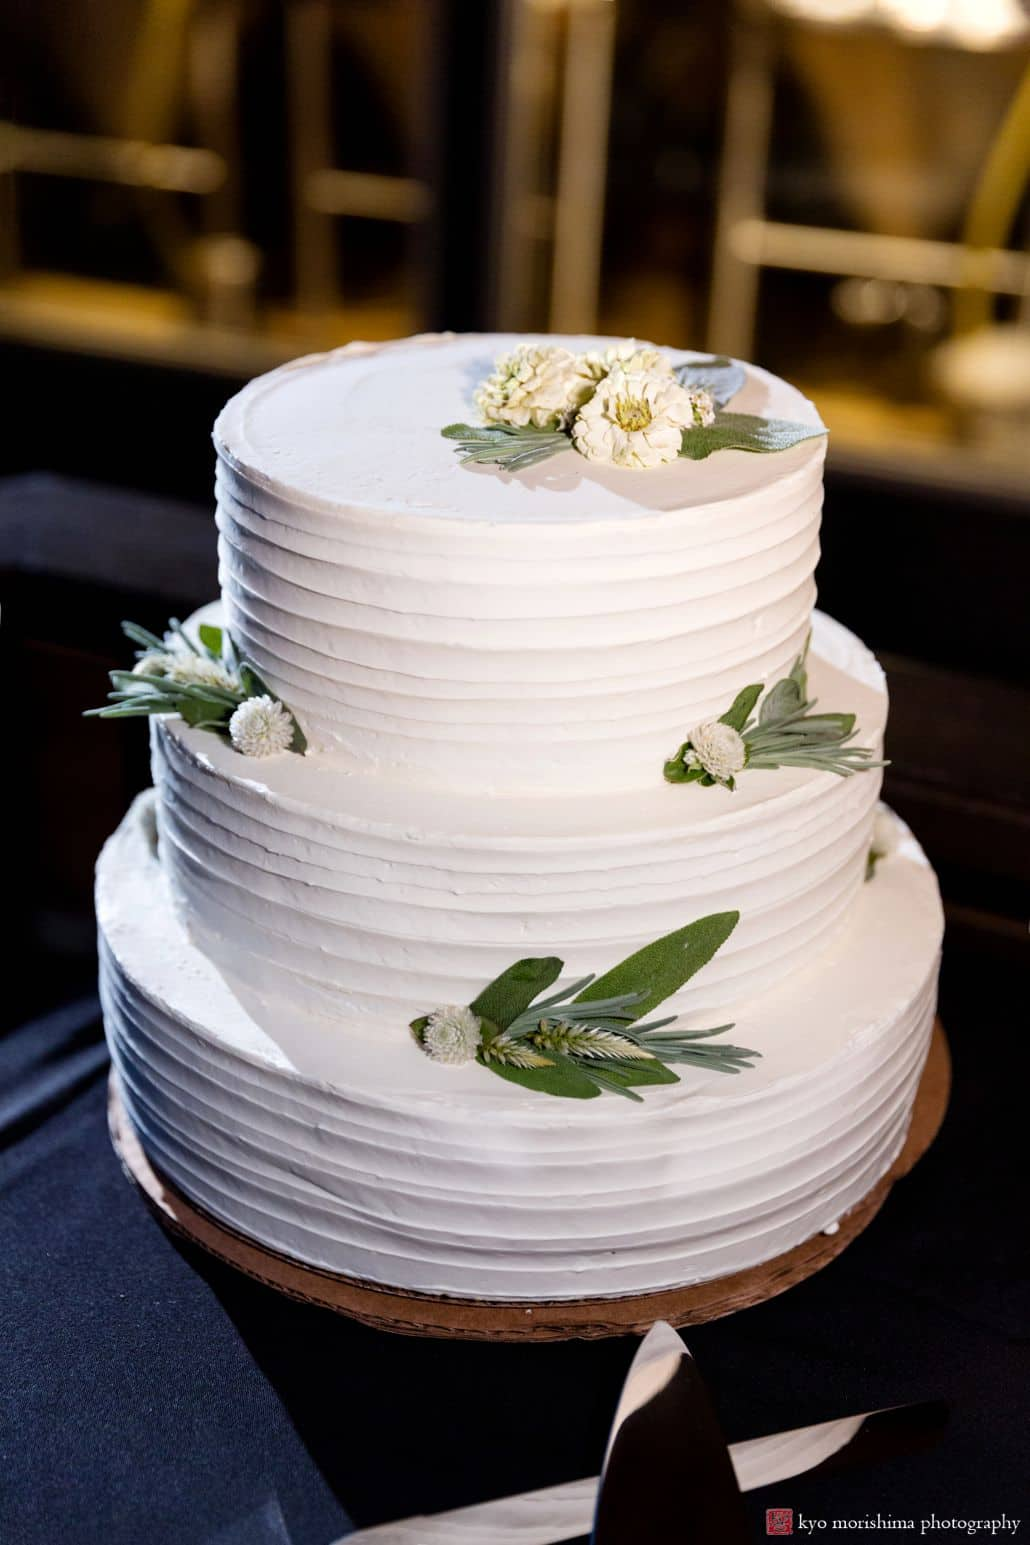 Simple and elegant 3 tier wedding cake with small white flowers and sage leaves, Factory Girl Bake Shop, Triumph Brewing Company, New Hope, PA wedding photographer.